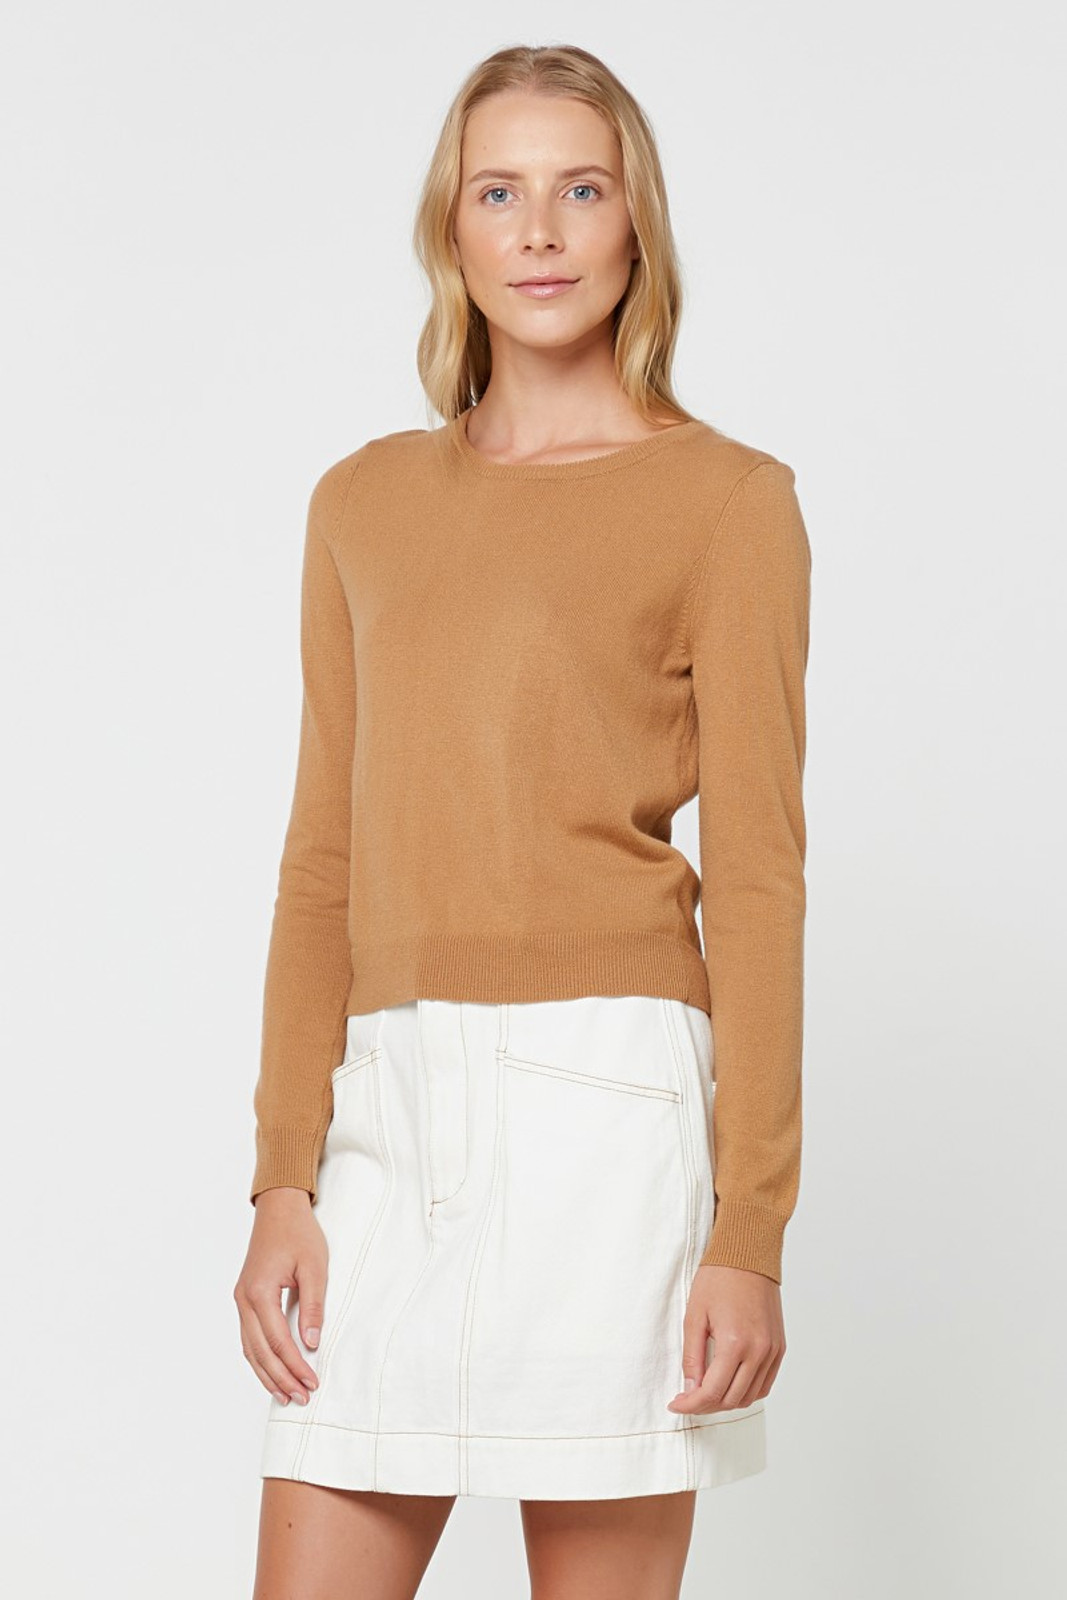 Elka Collective Gale Knit Neutrals  1